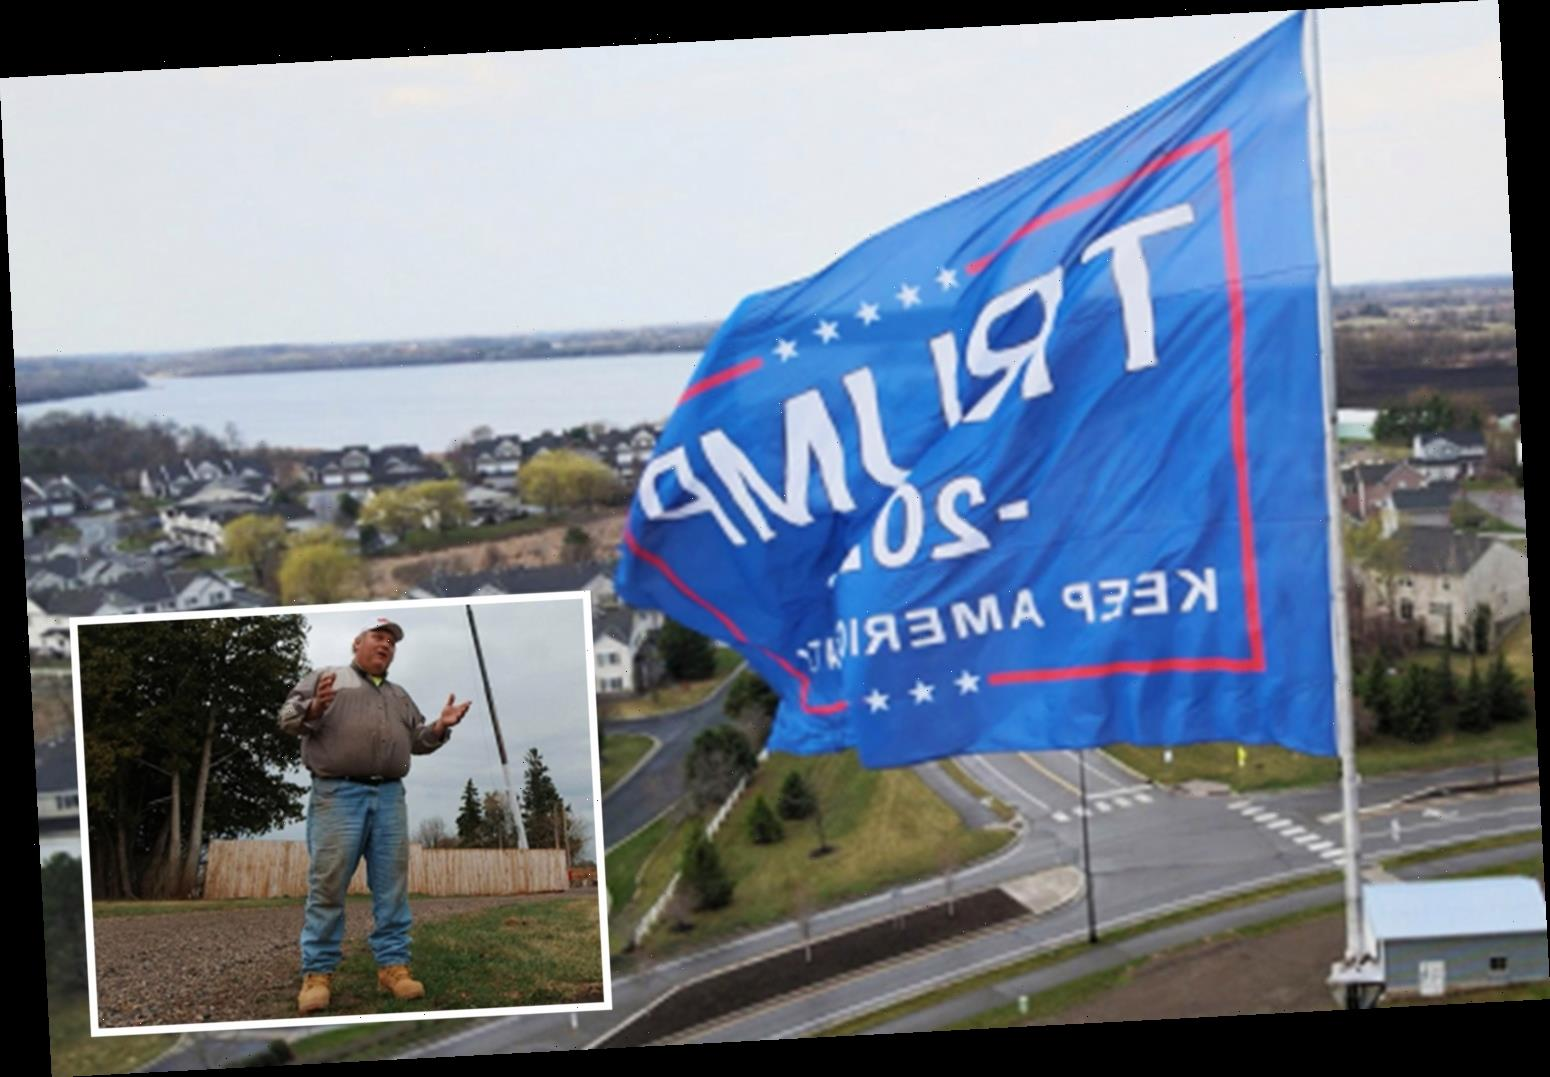 Trump supporter is 'willing to go to be fined and go to JAIL' for massive 2020 flag that is violating city rules